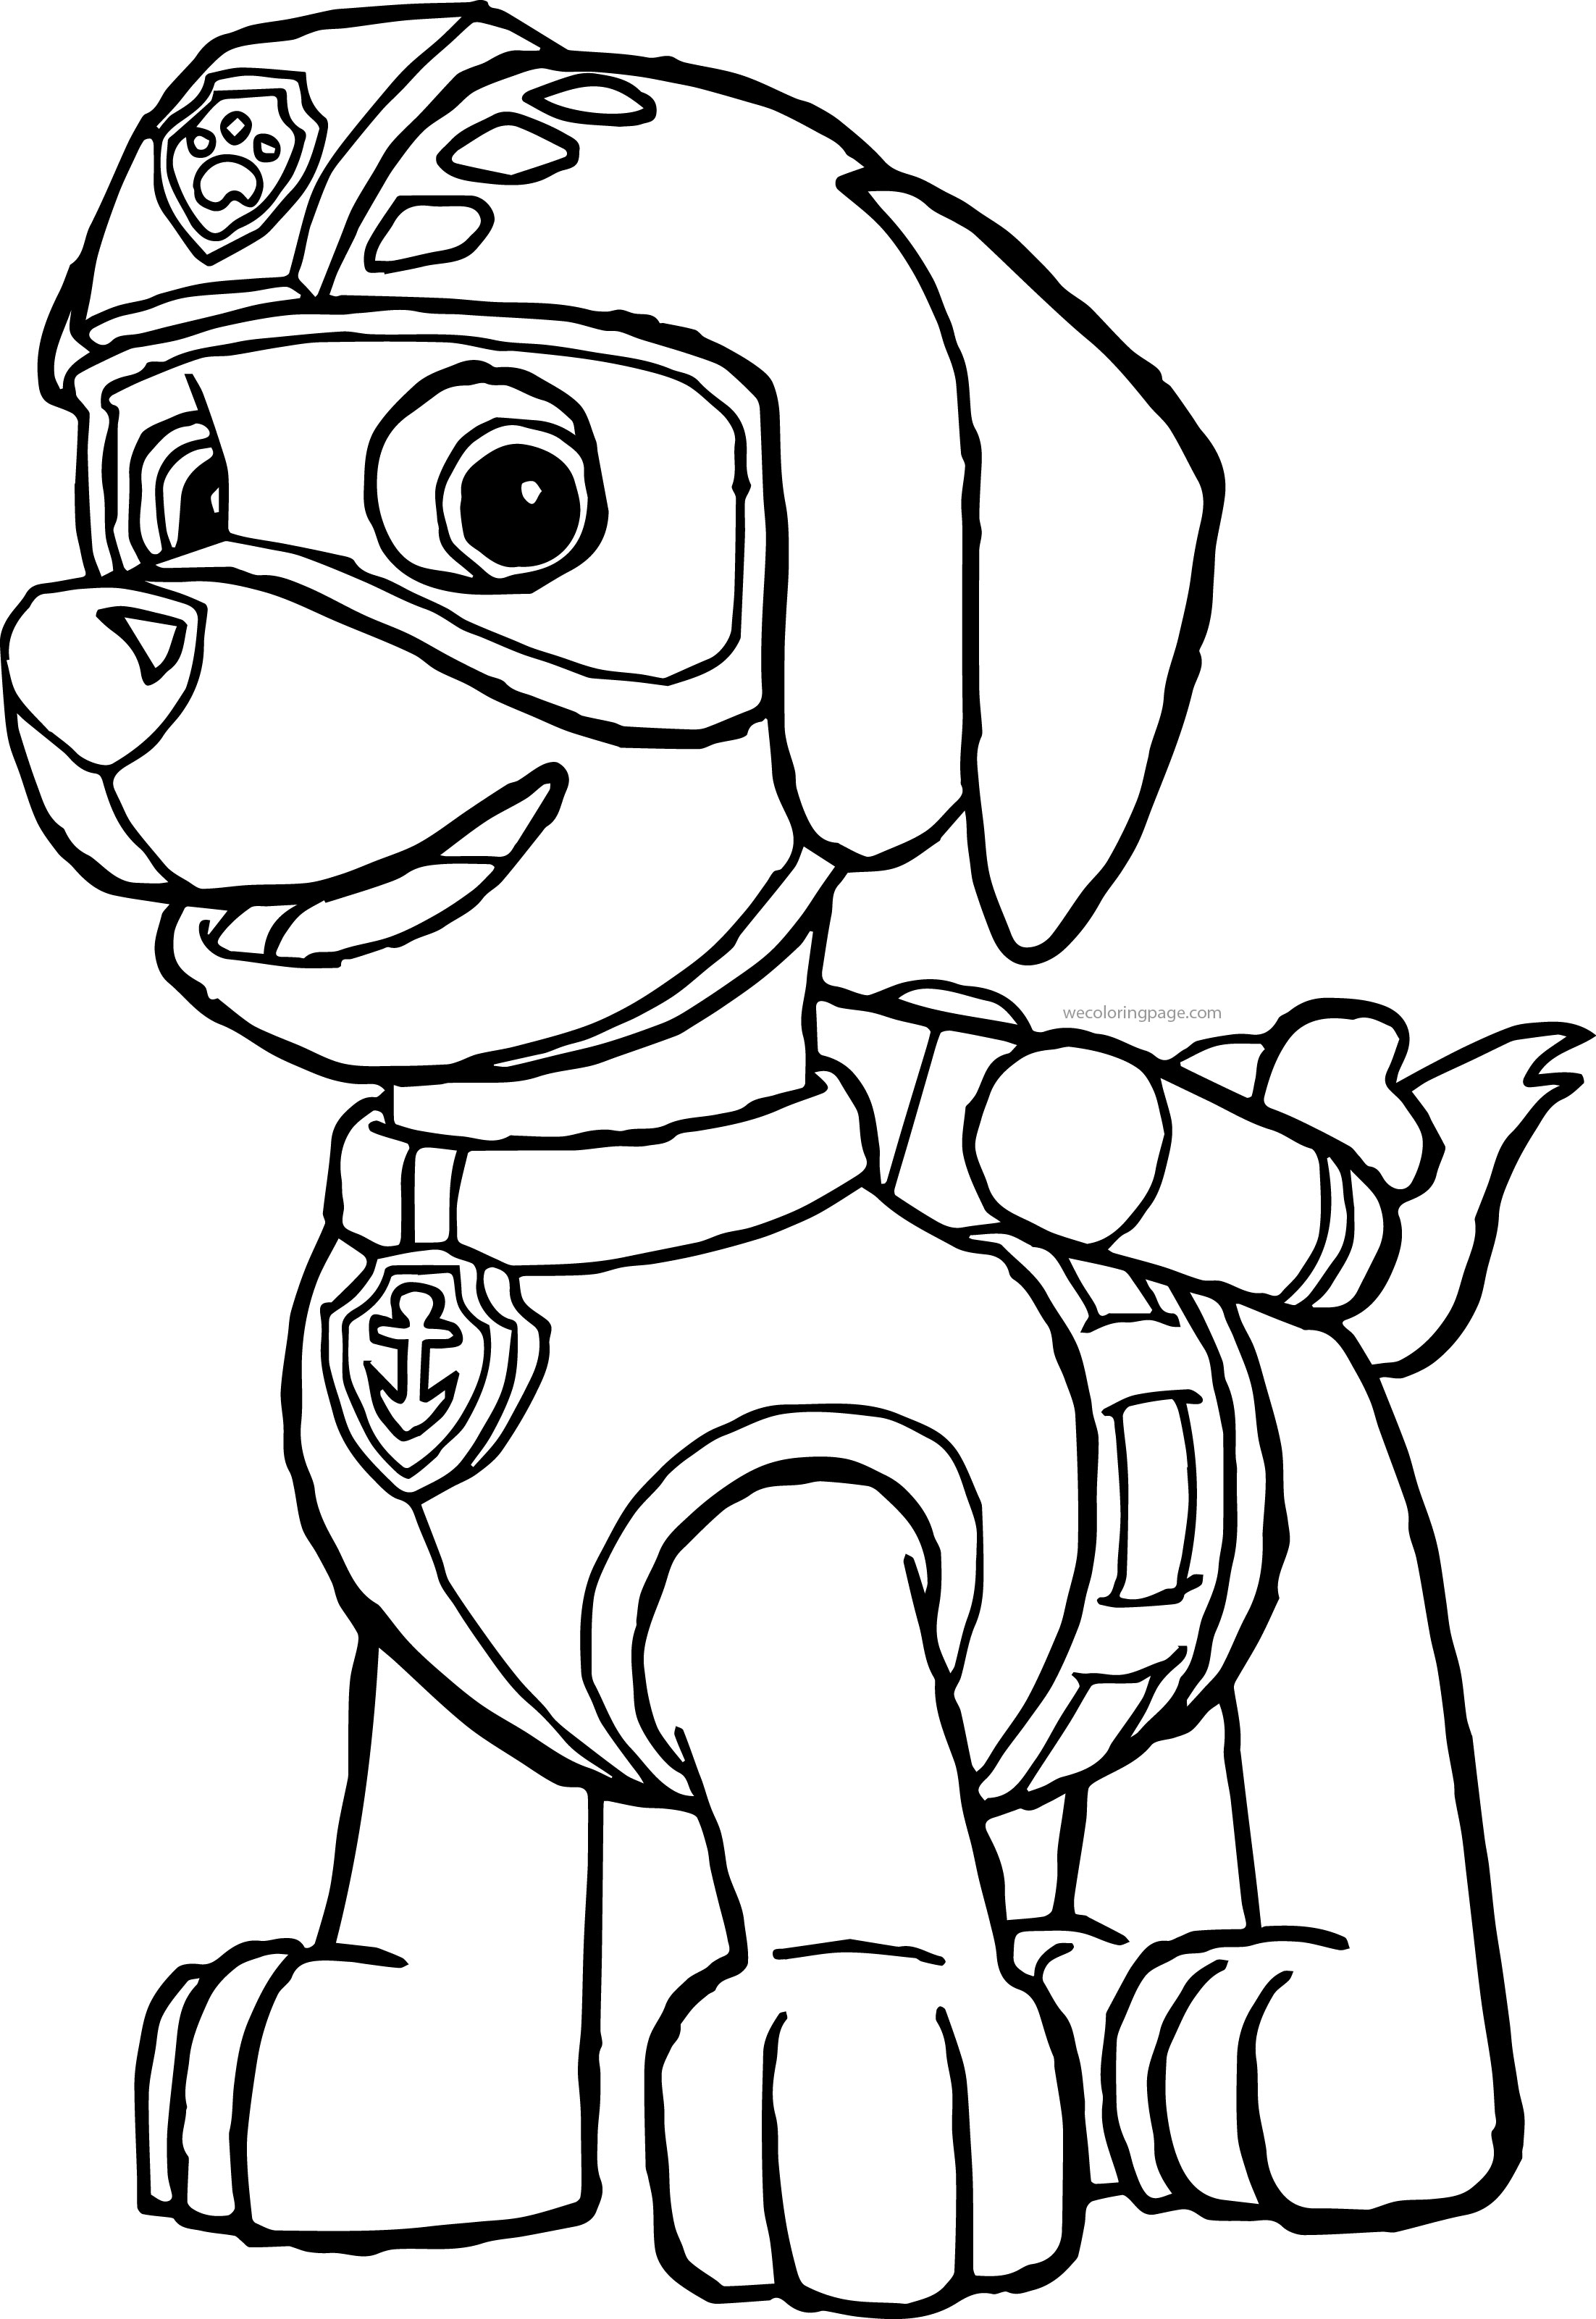 The Best Free Zuma Coloring Page Images Download From 111 Free